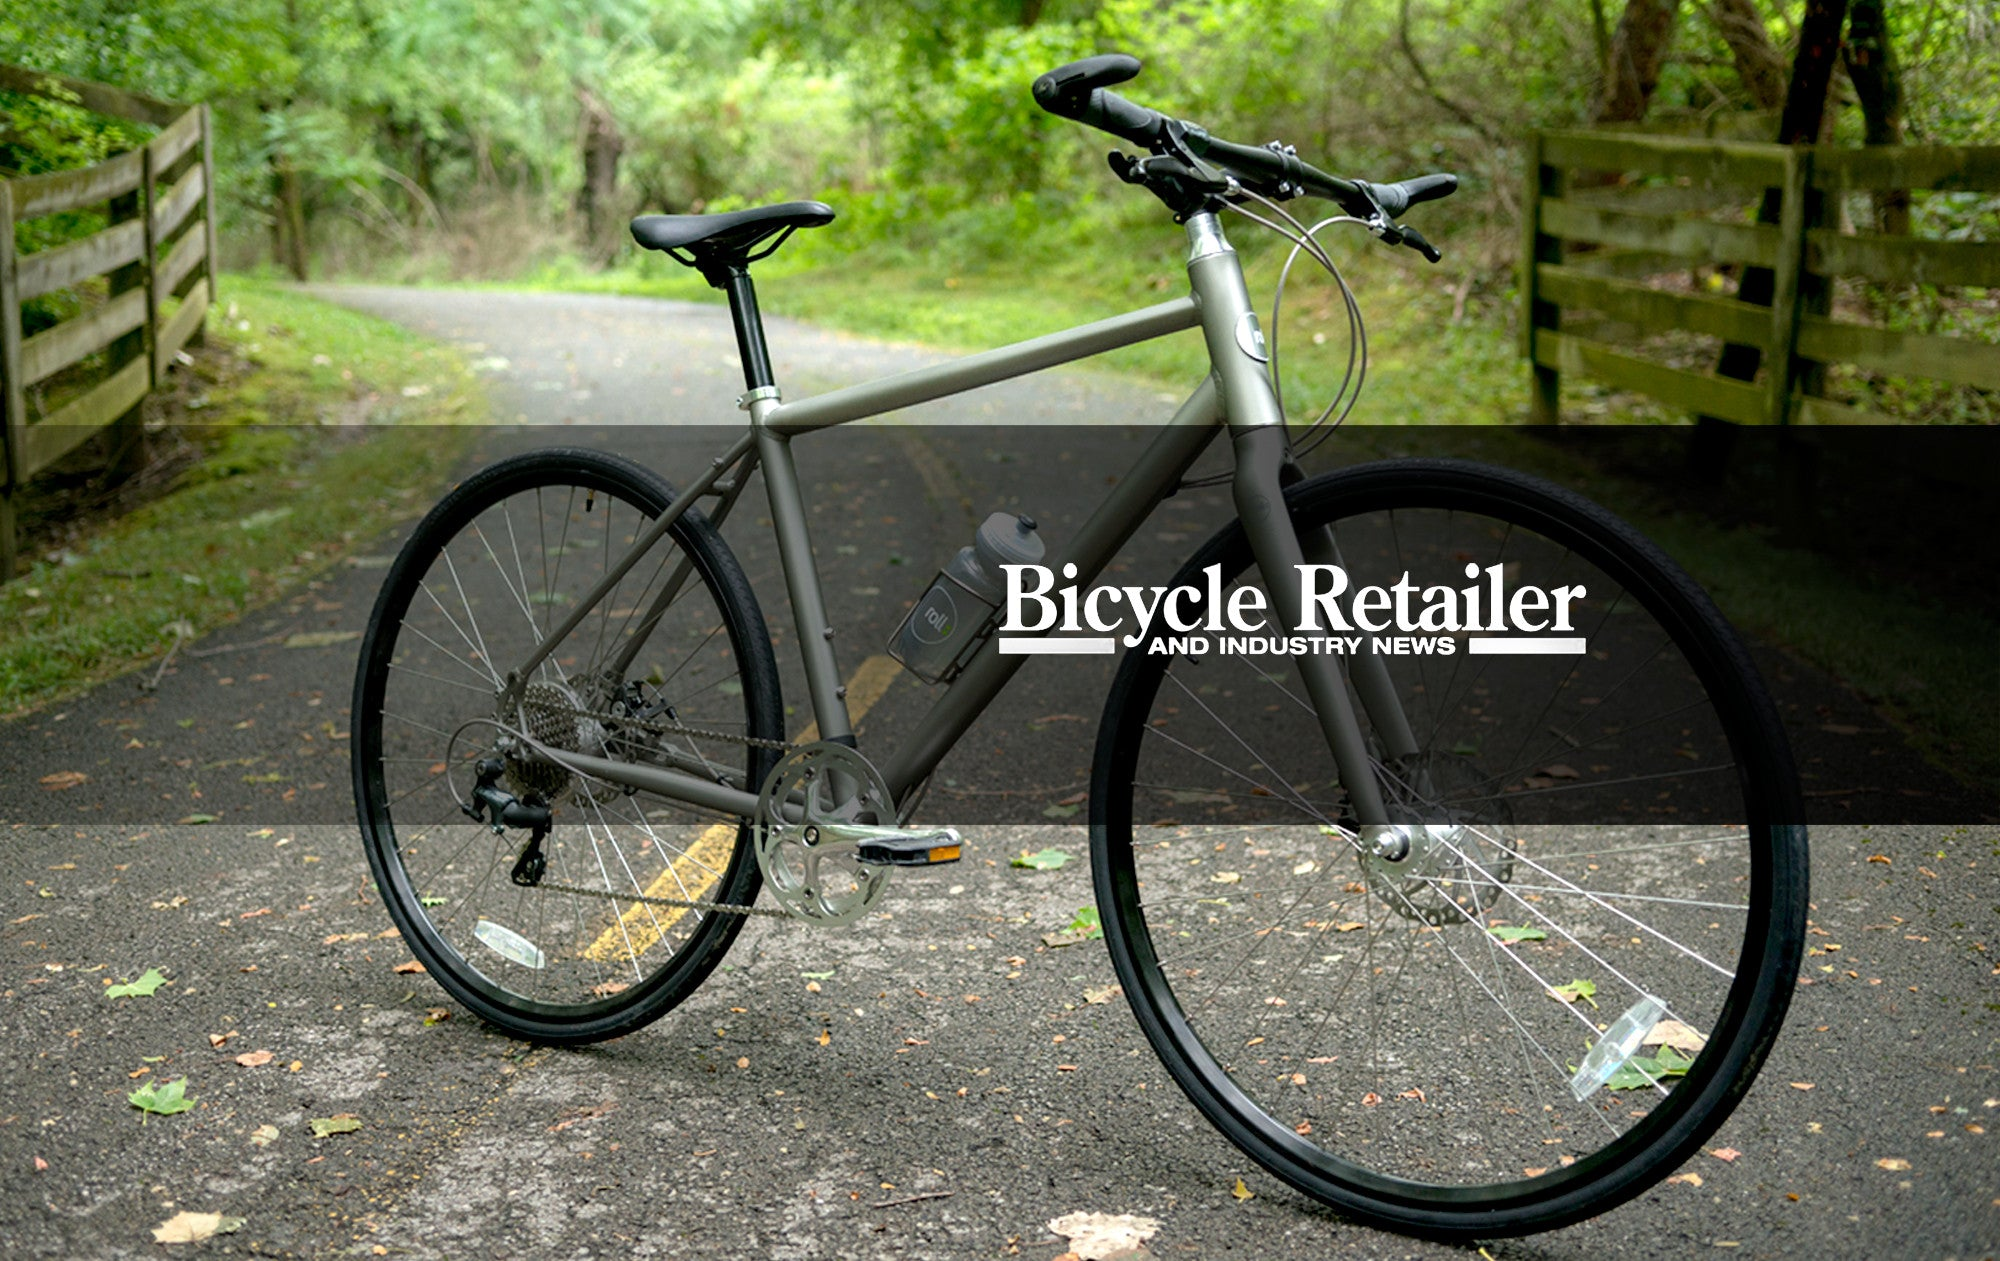 Bicycle Retailer - Roll: Bicycle Company begins selling customizable bikes online